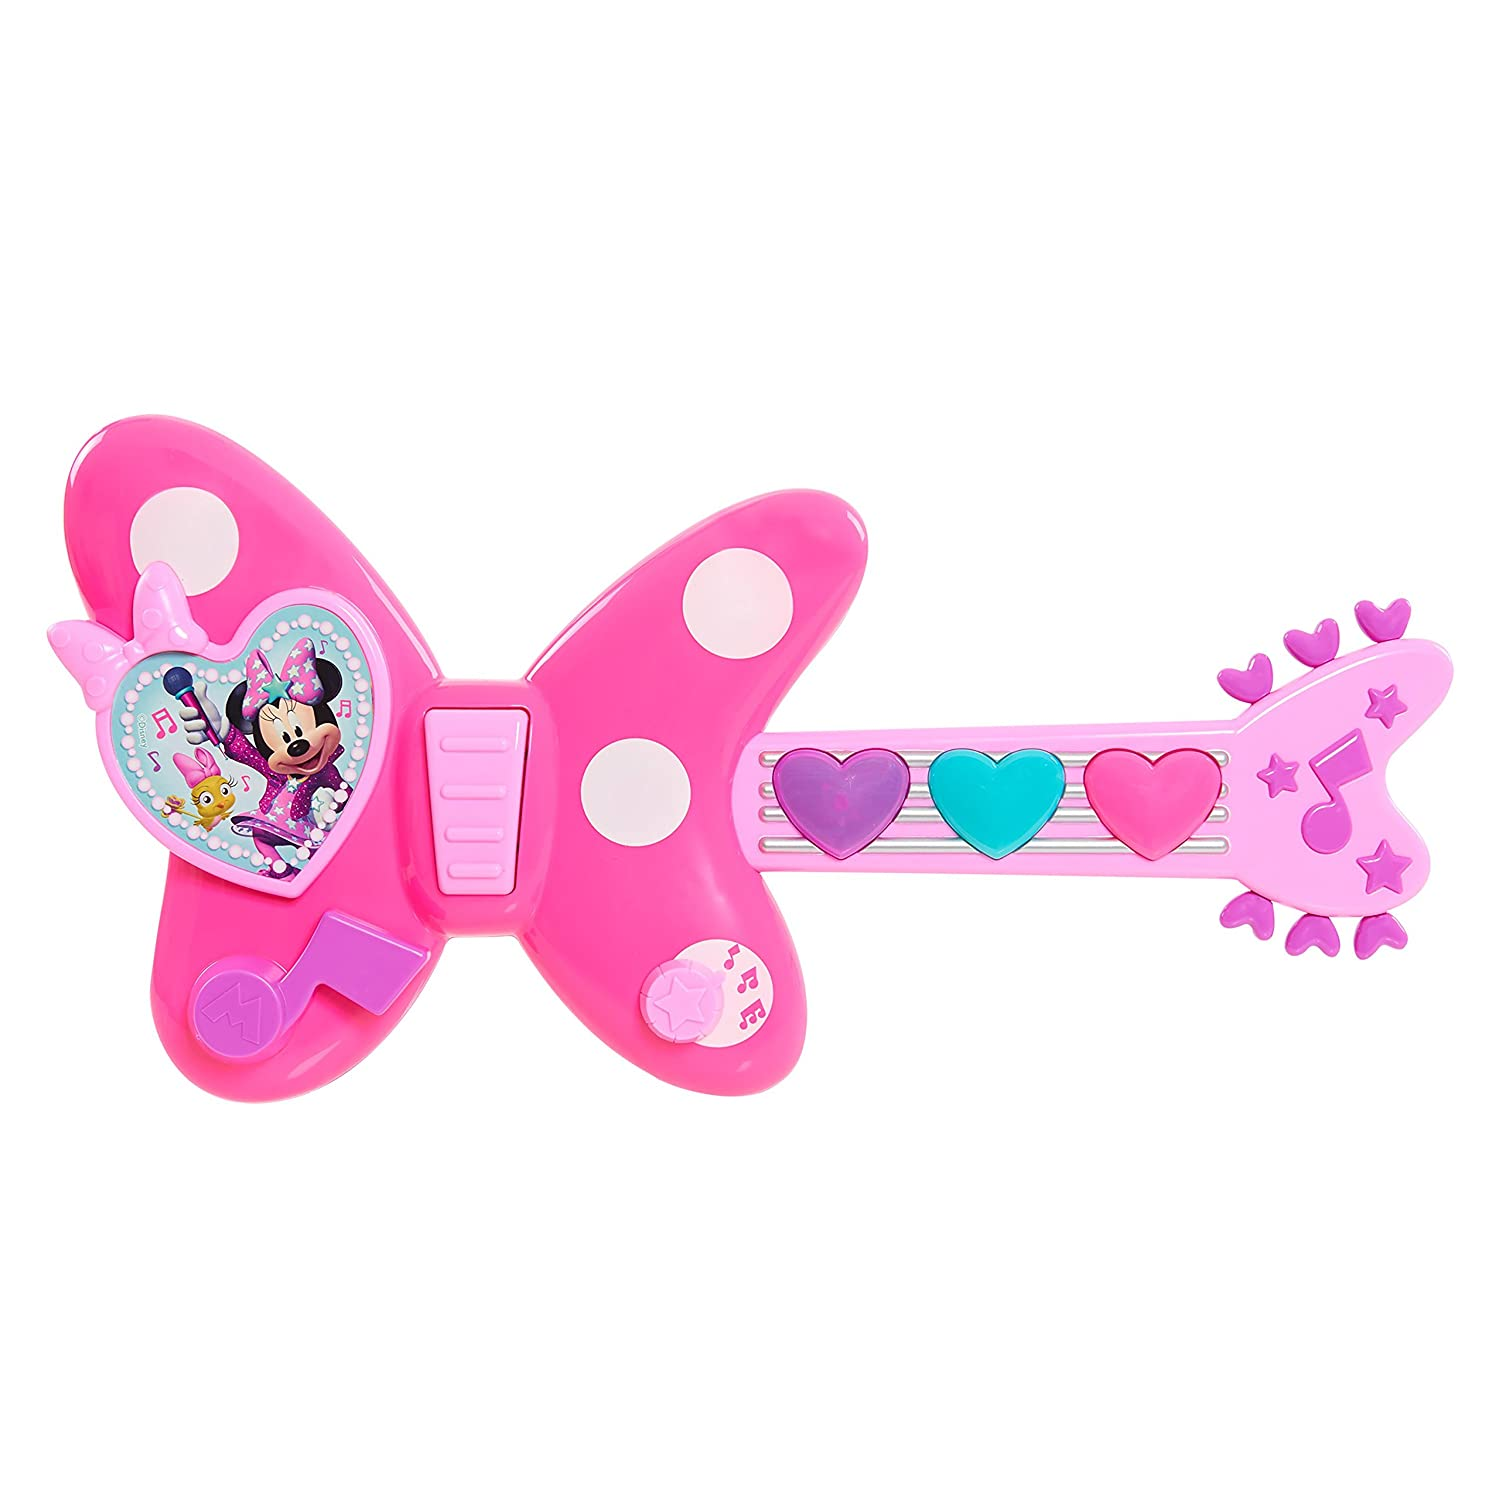 197a4dd368 Buy MINNIE Just Play Happy Helpers Rockin' Guitar, Pink Online at Low  Prices in India - Amazon.in